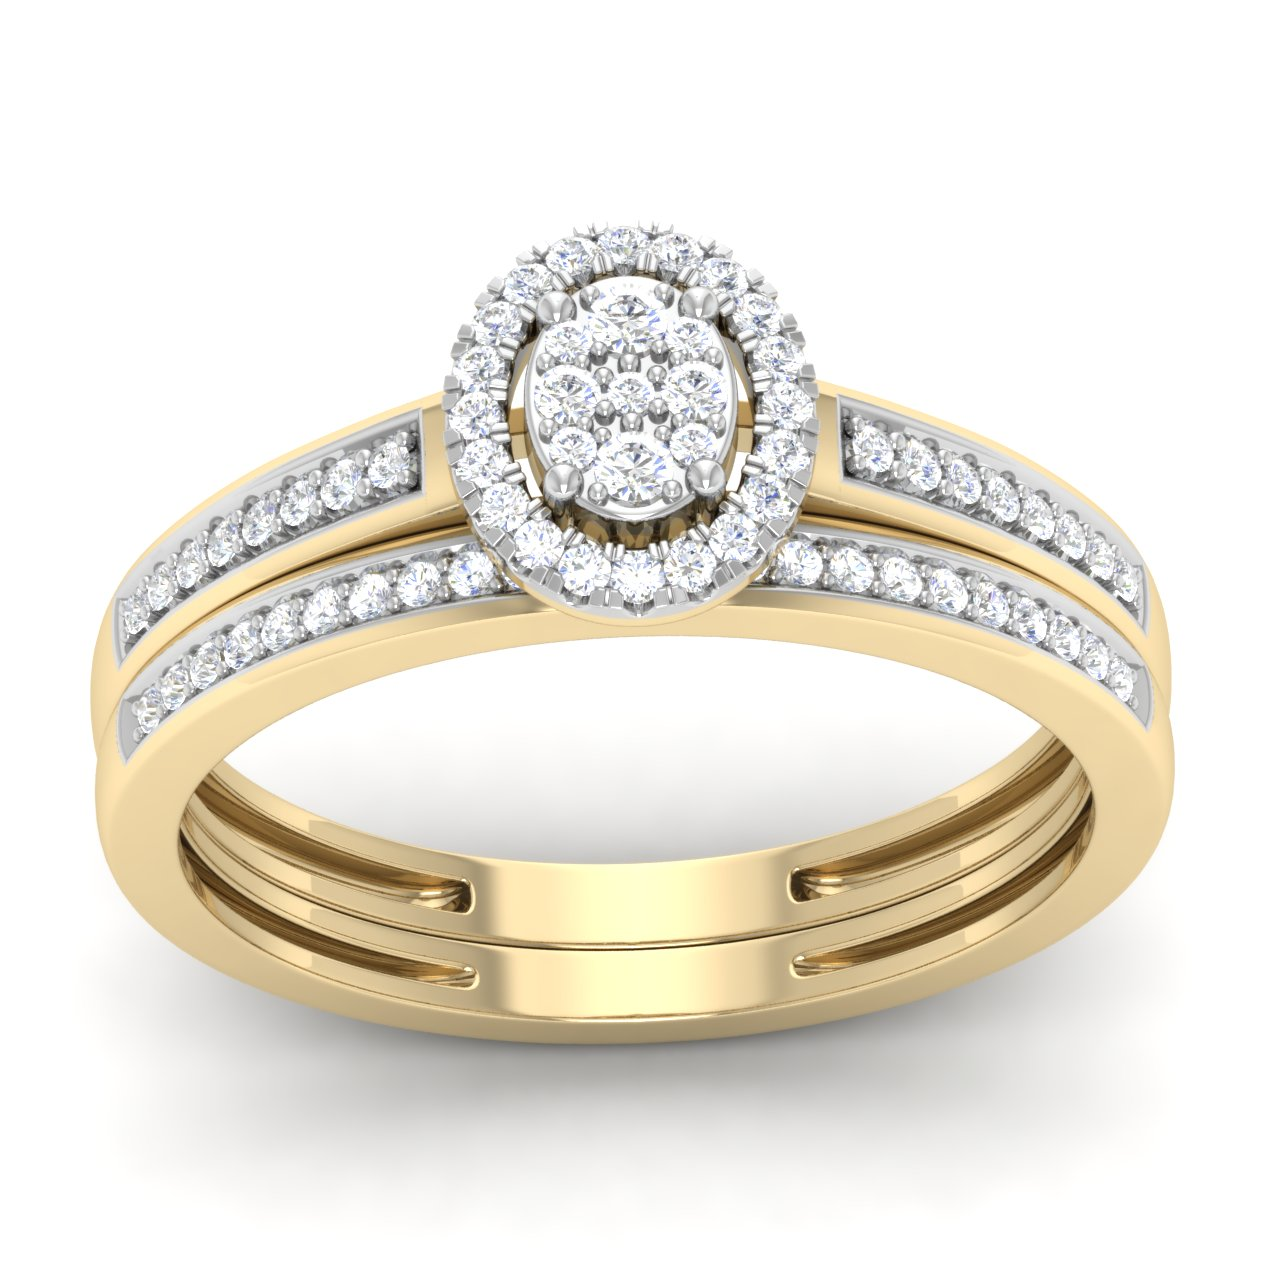 Trillion Designs 1 4Ct Round Cut Natural Diamond Double Halo Bridal Ring Set in 10K Yellow Gold by Arina Jewelry